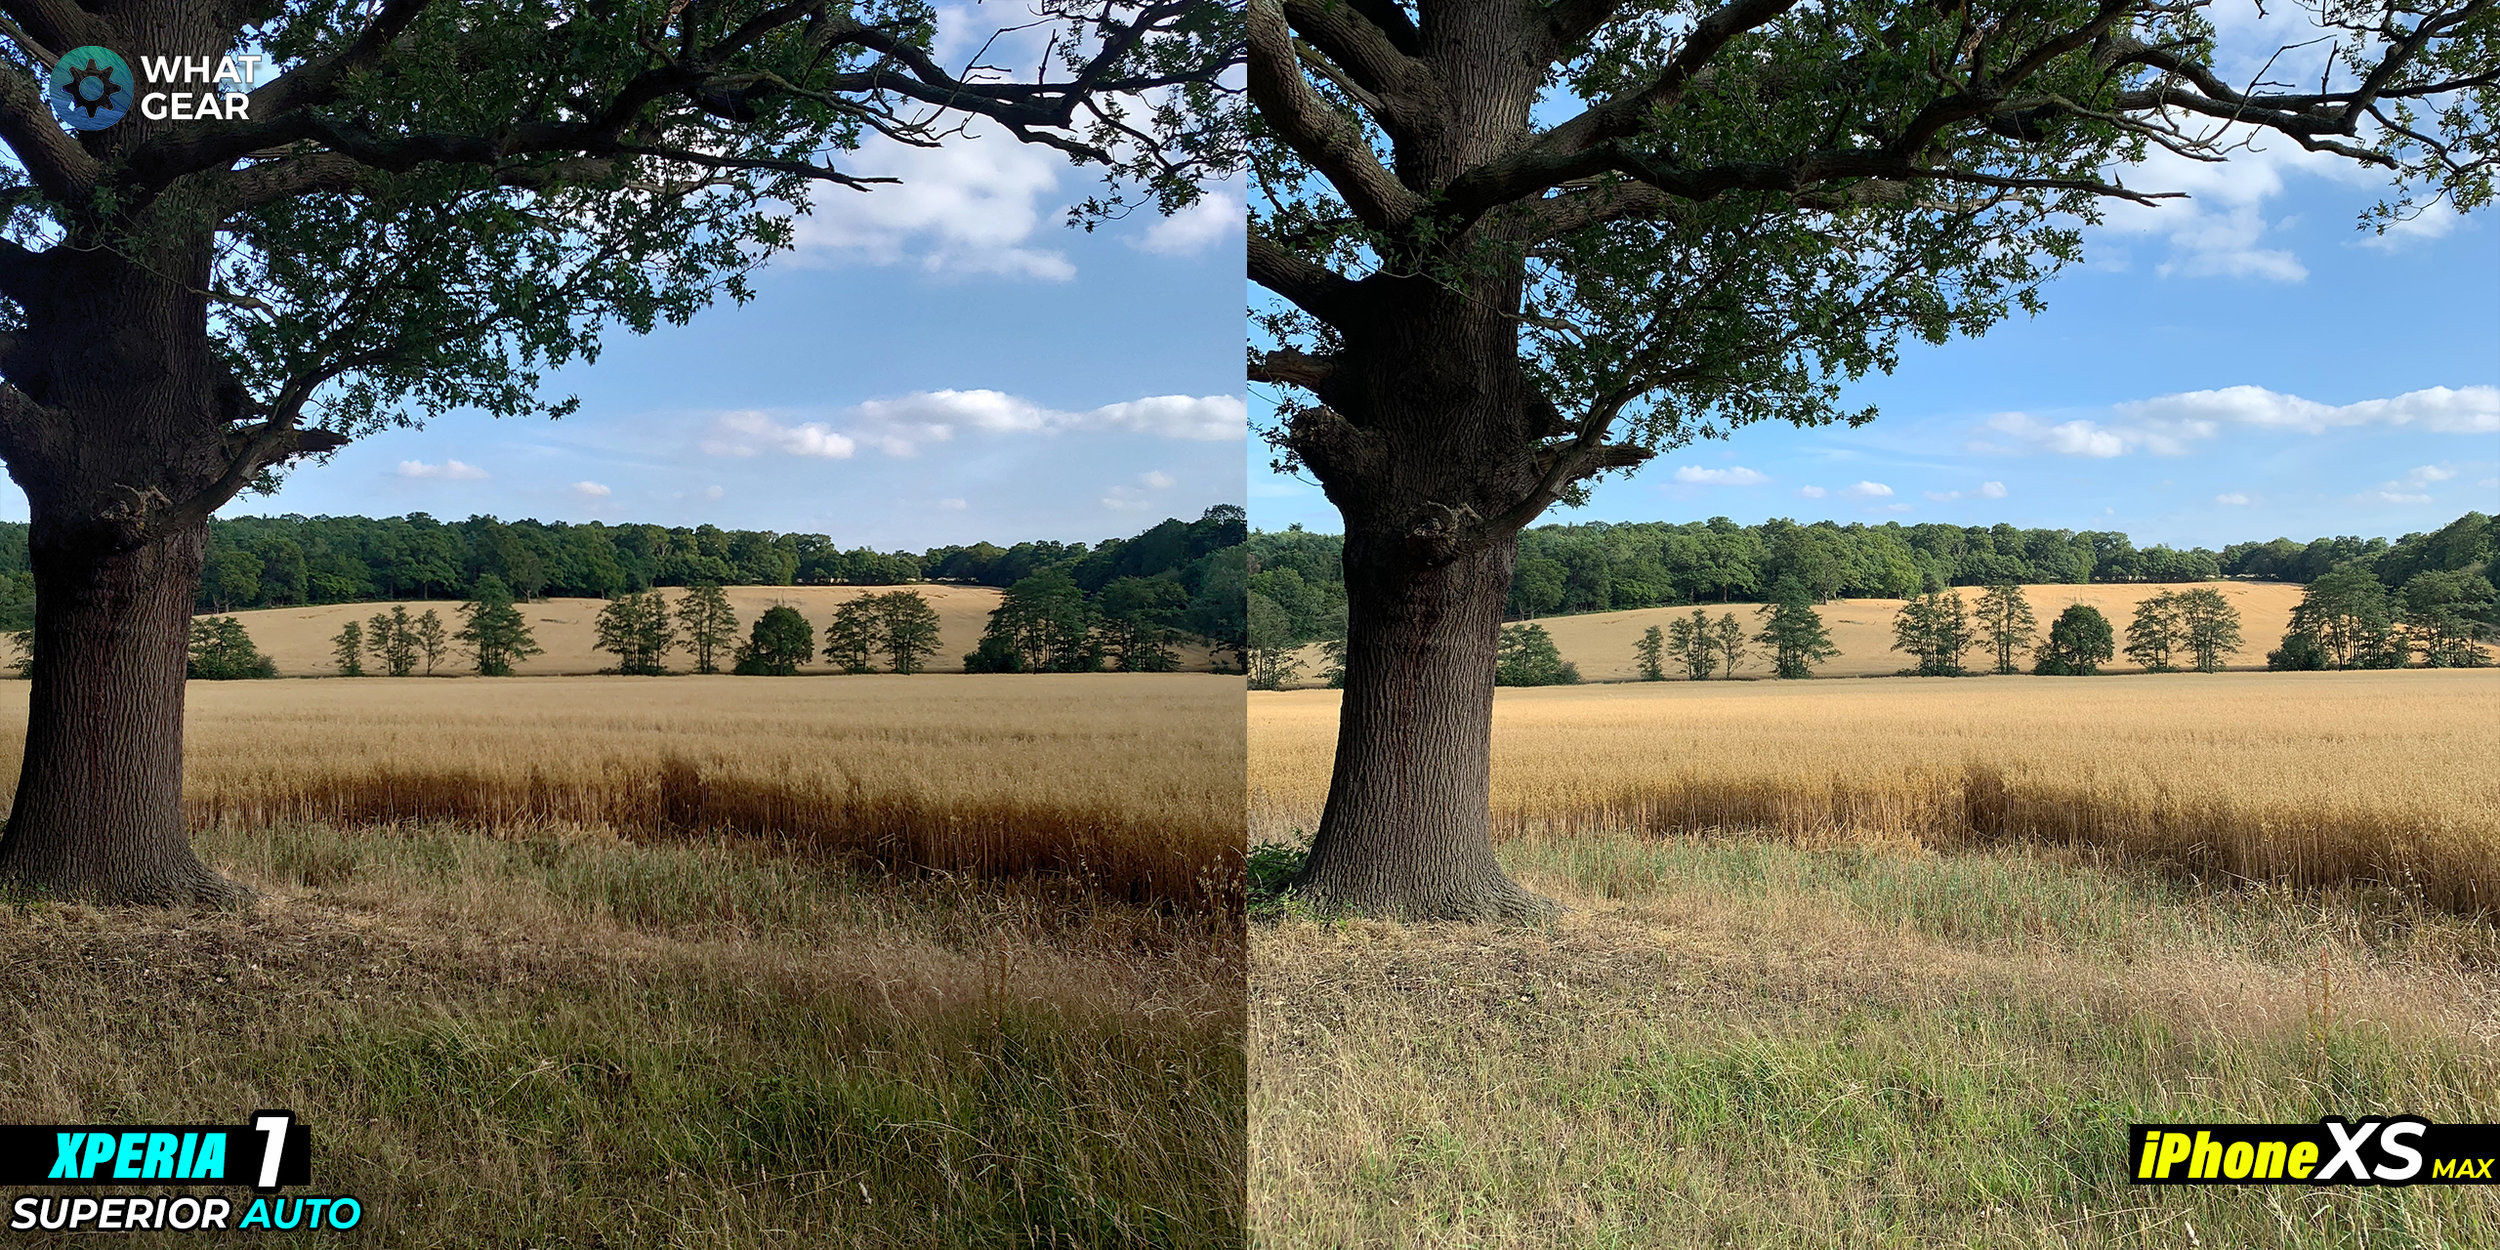 xperia 1 vs iphone xs camera 1.jpg